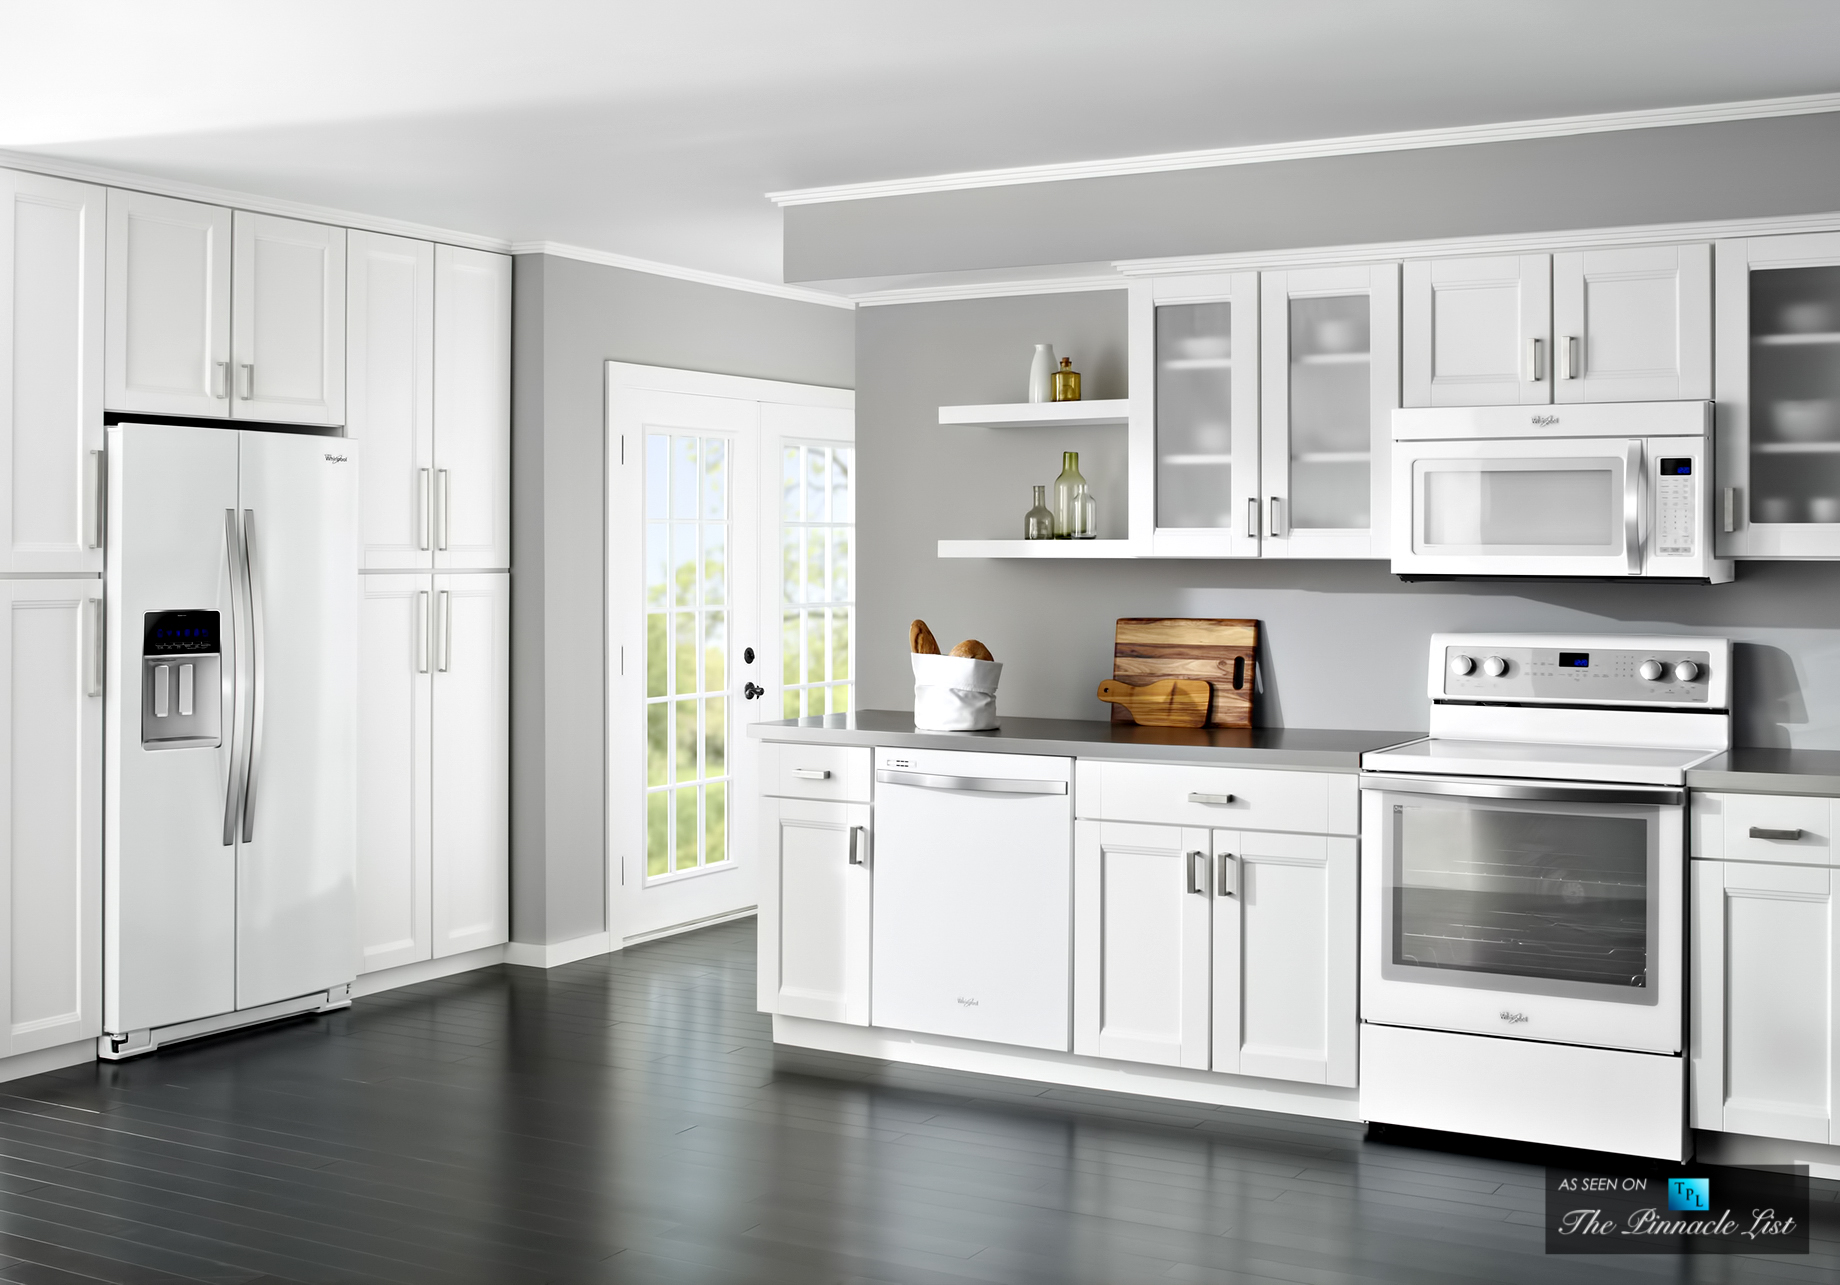 Buy New Appliances - Home Design and Decor - 5 Tips for Creating a Beautiful Kitchen Space